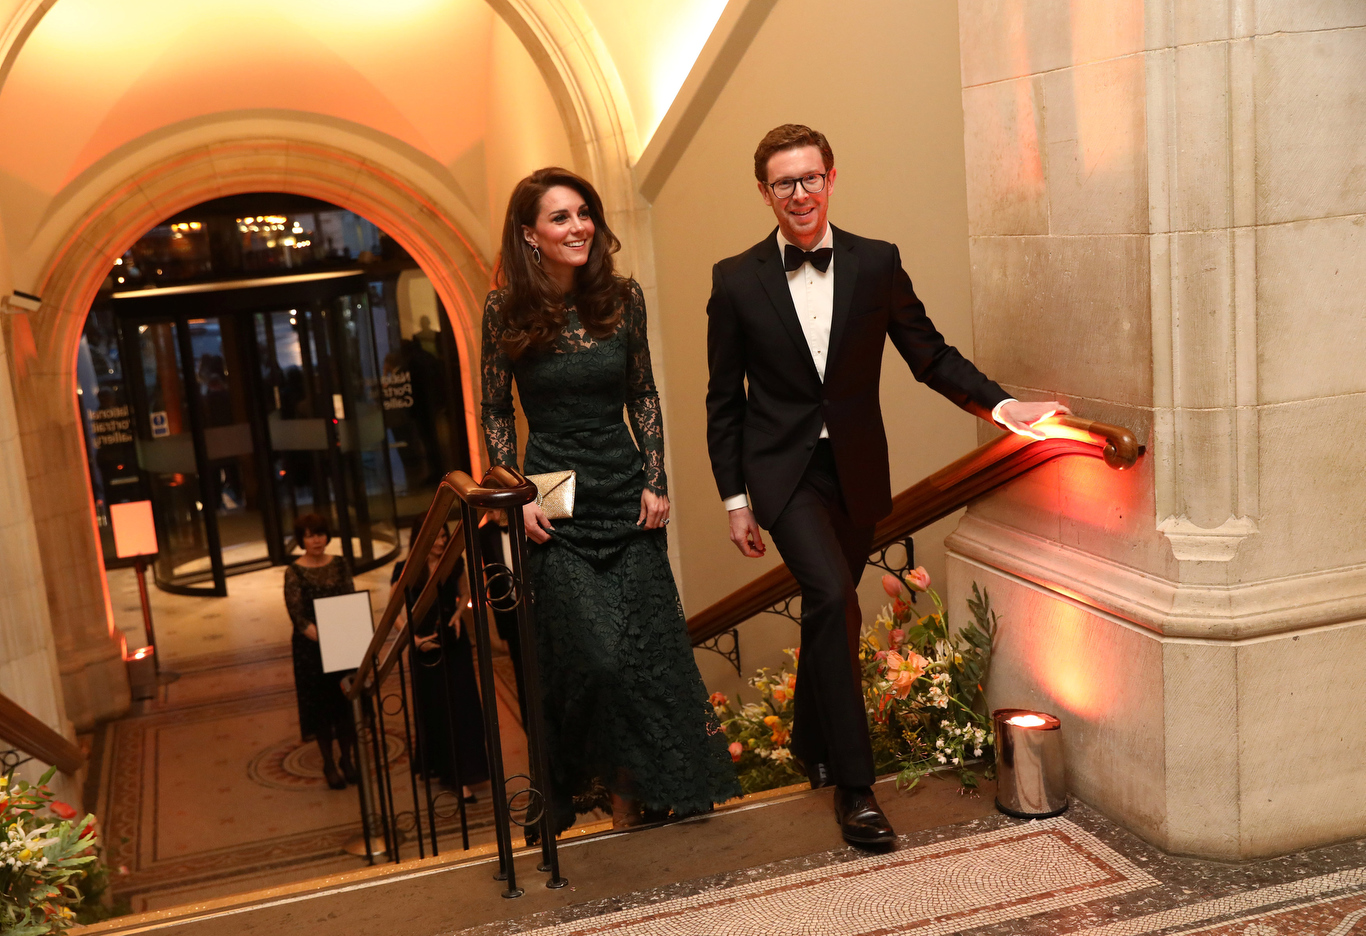 Cullinan, gallery director at the 2017 Portrait Gala at the National Portrait Gallery in London